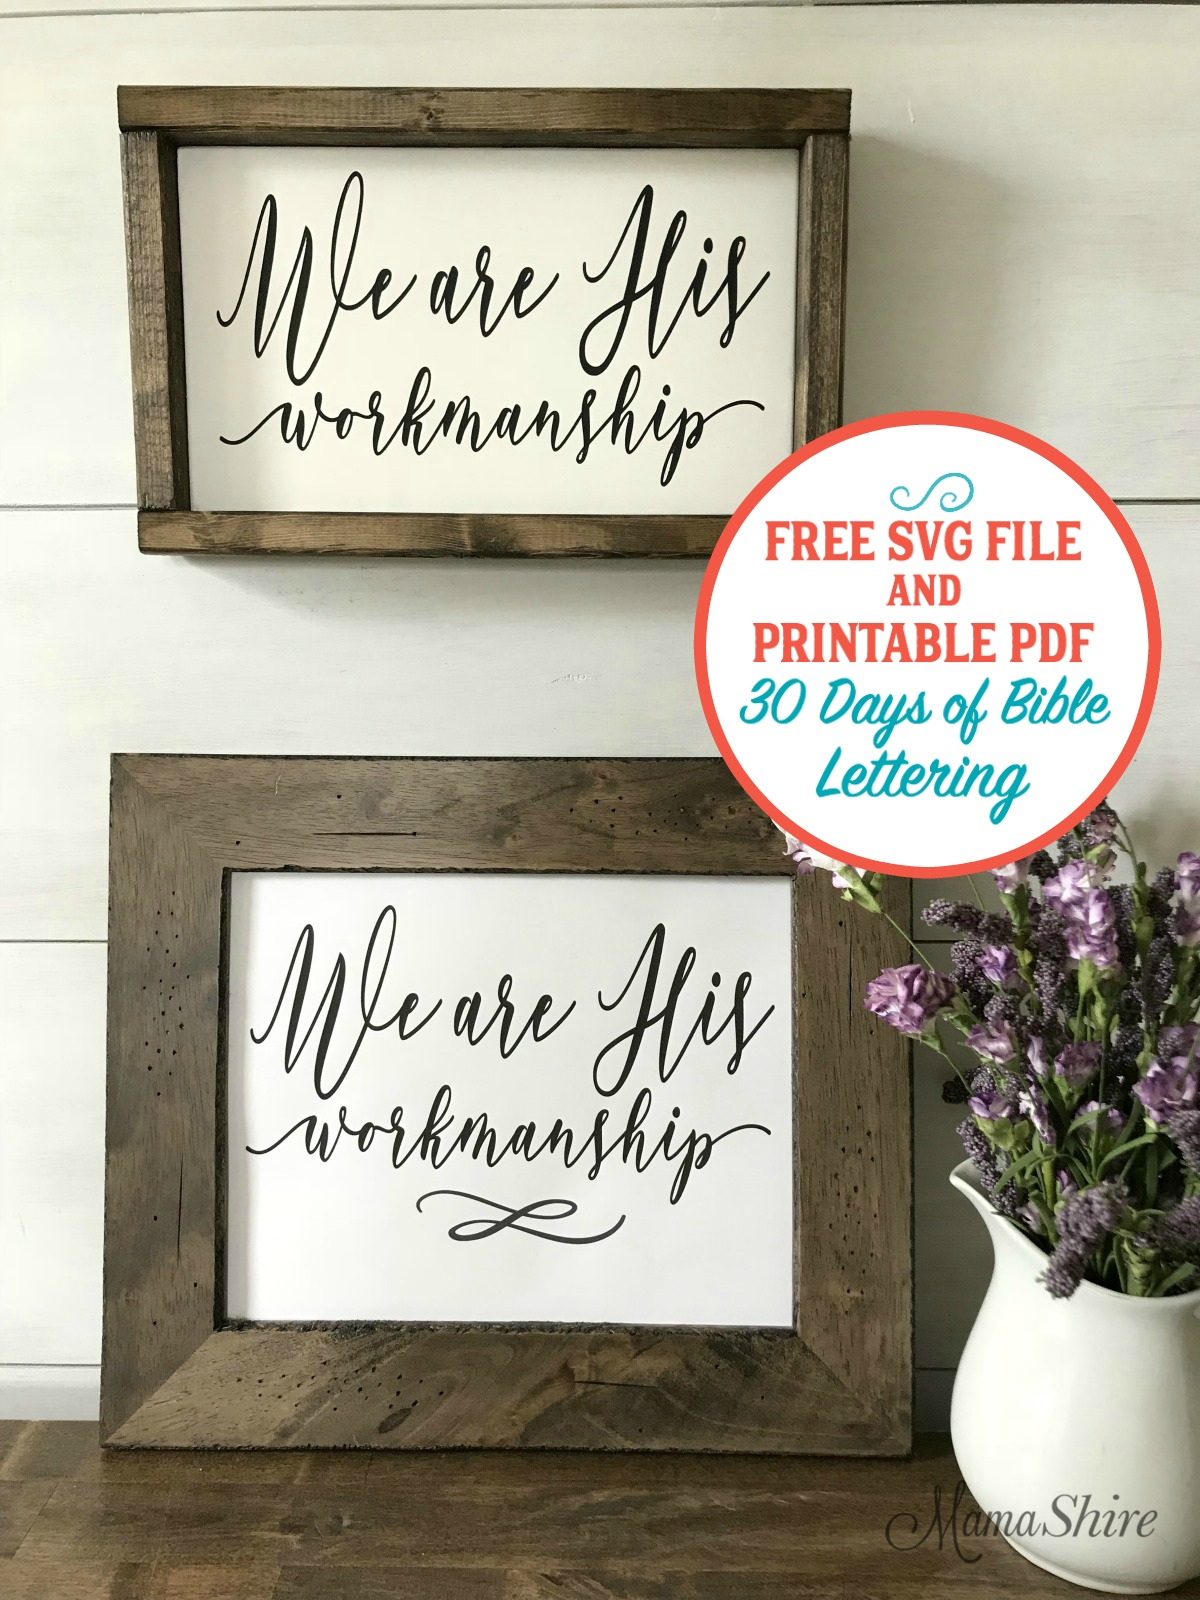 graphic about Free Printable Bible Verses Handwriting called Totally free Bible Verse SVG Document Printable PDF #1 - MamaShire